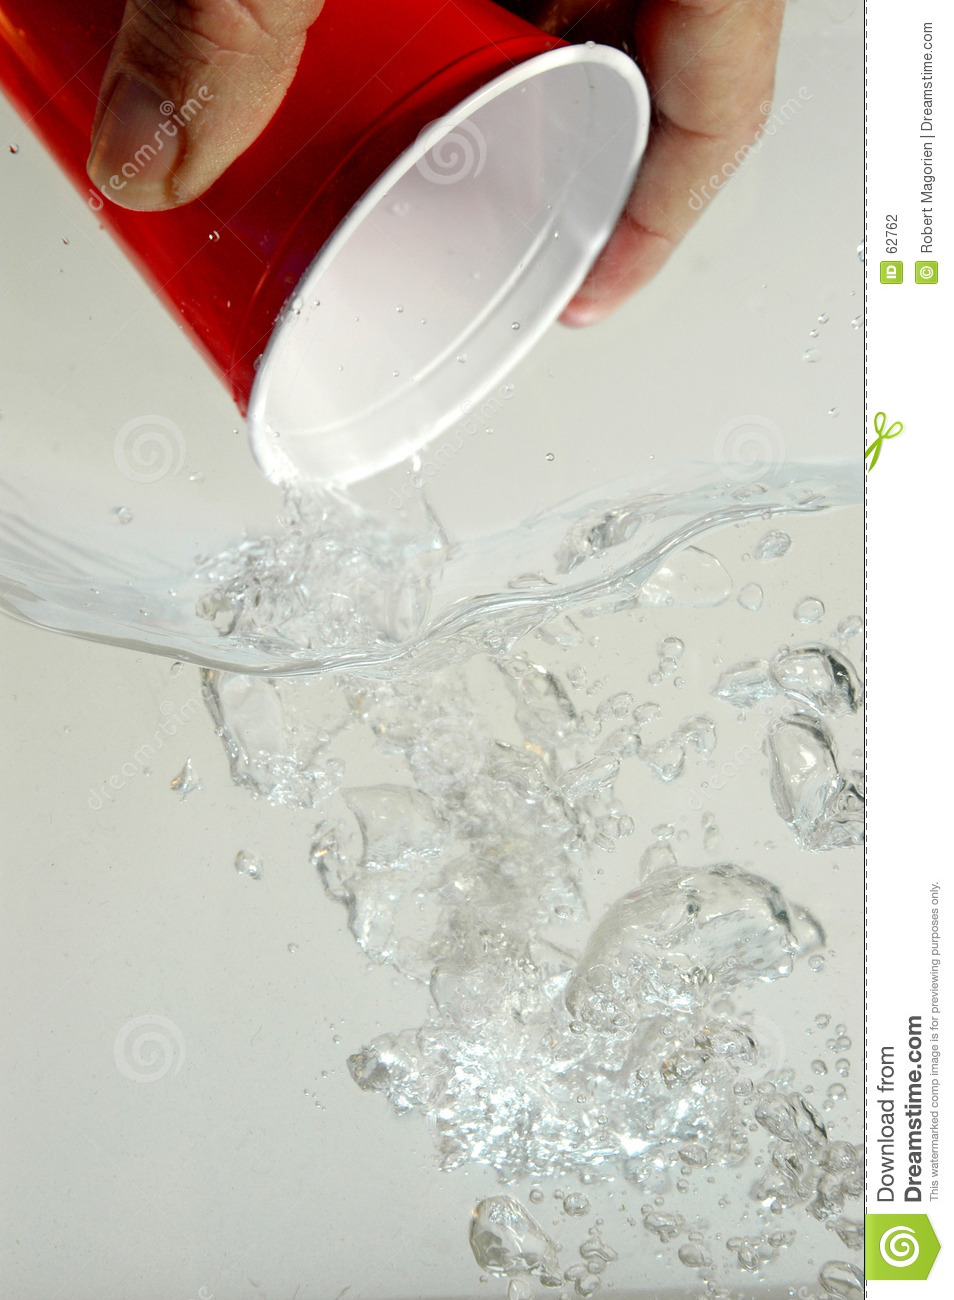 Hand pouring water